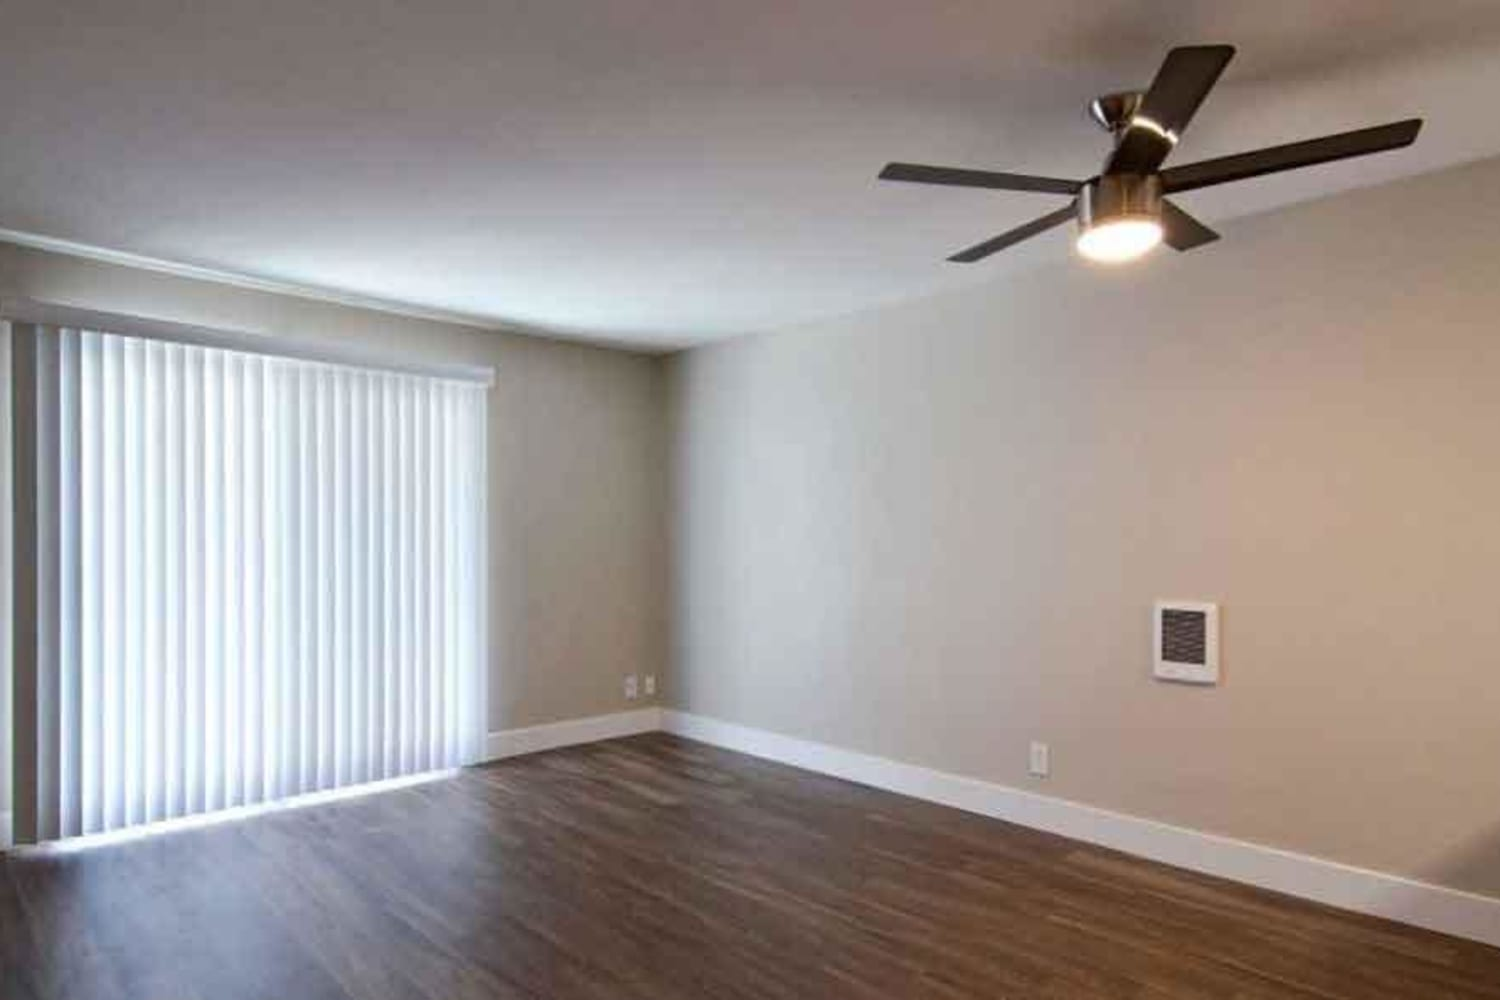 Hardwood floors and ceiling fans are offered at Harbor Cove Apartments in Foster City, California